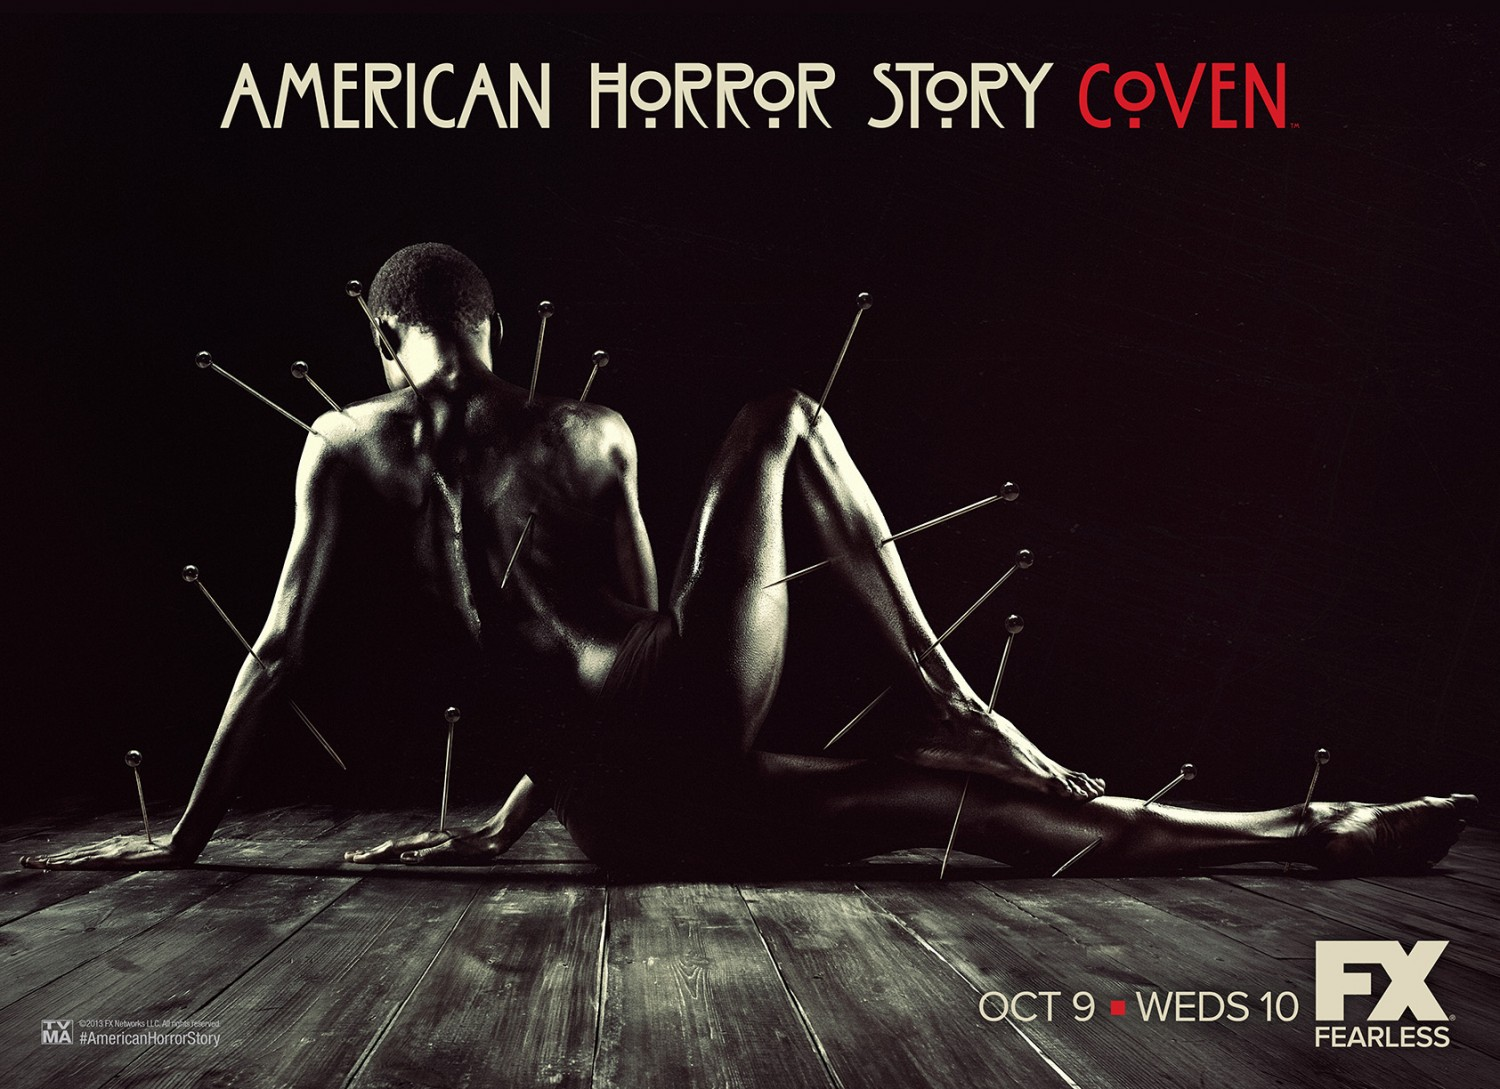 American Horror Story Coven-Season 3-Official Poster Banner PROMO-16SETEMBRO2013-02